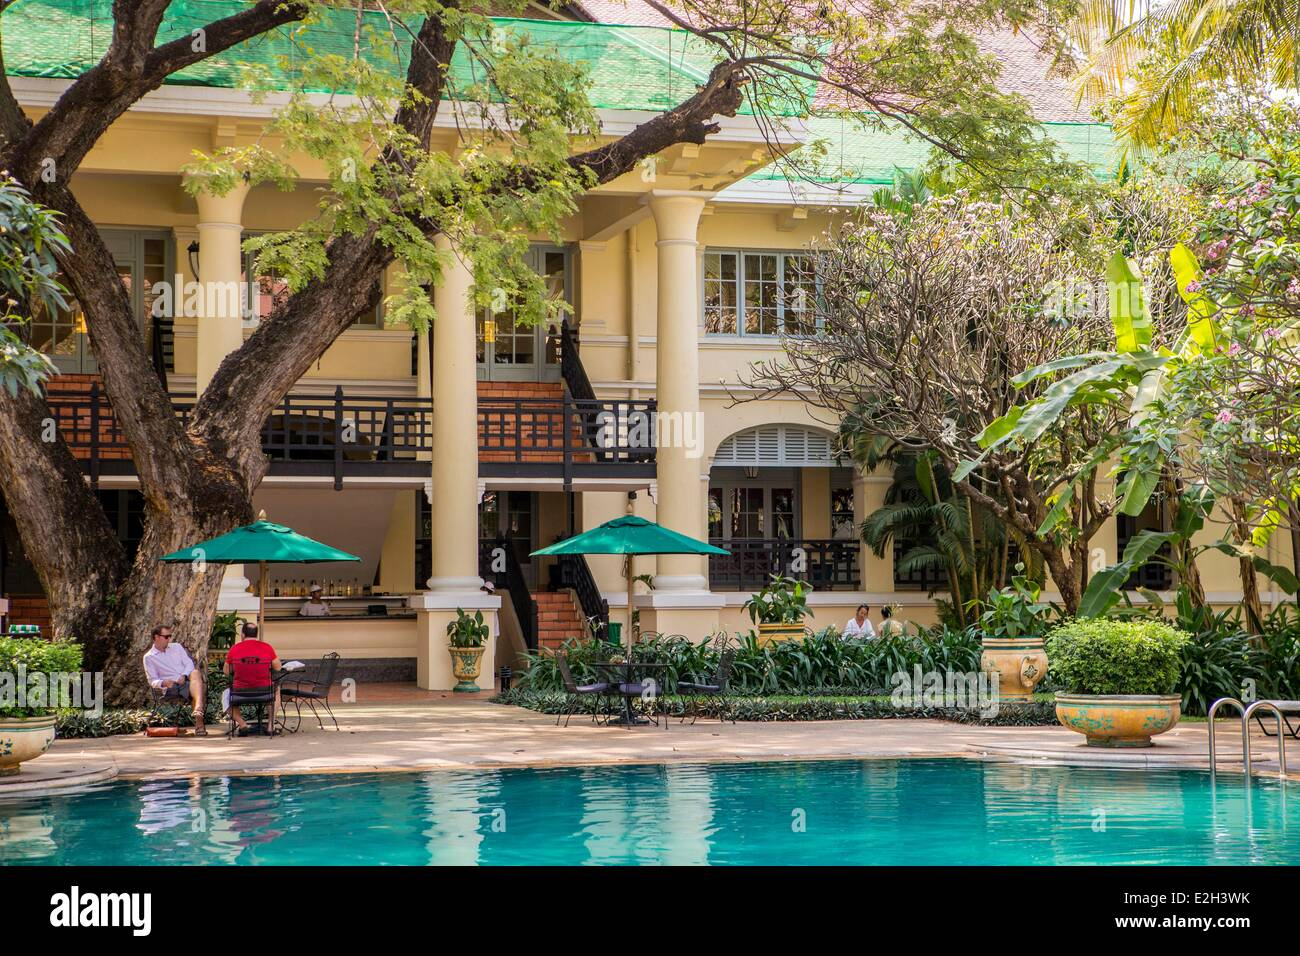 Cambodia Phnom Penh Raffles Hotel Le Royal luxurious hotel in colonial era - Stock Image